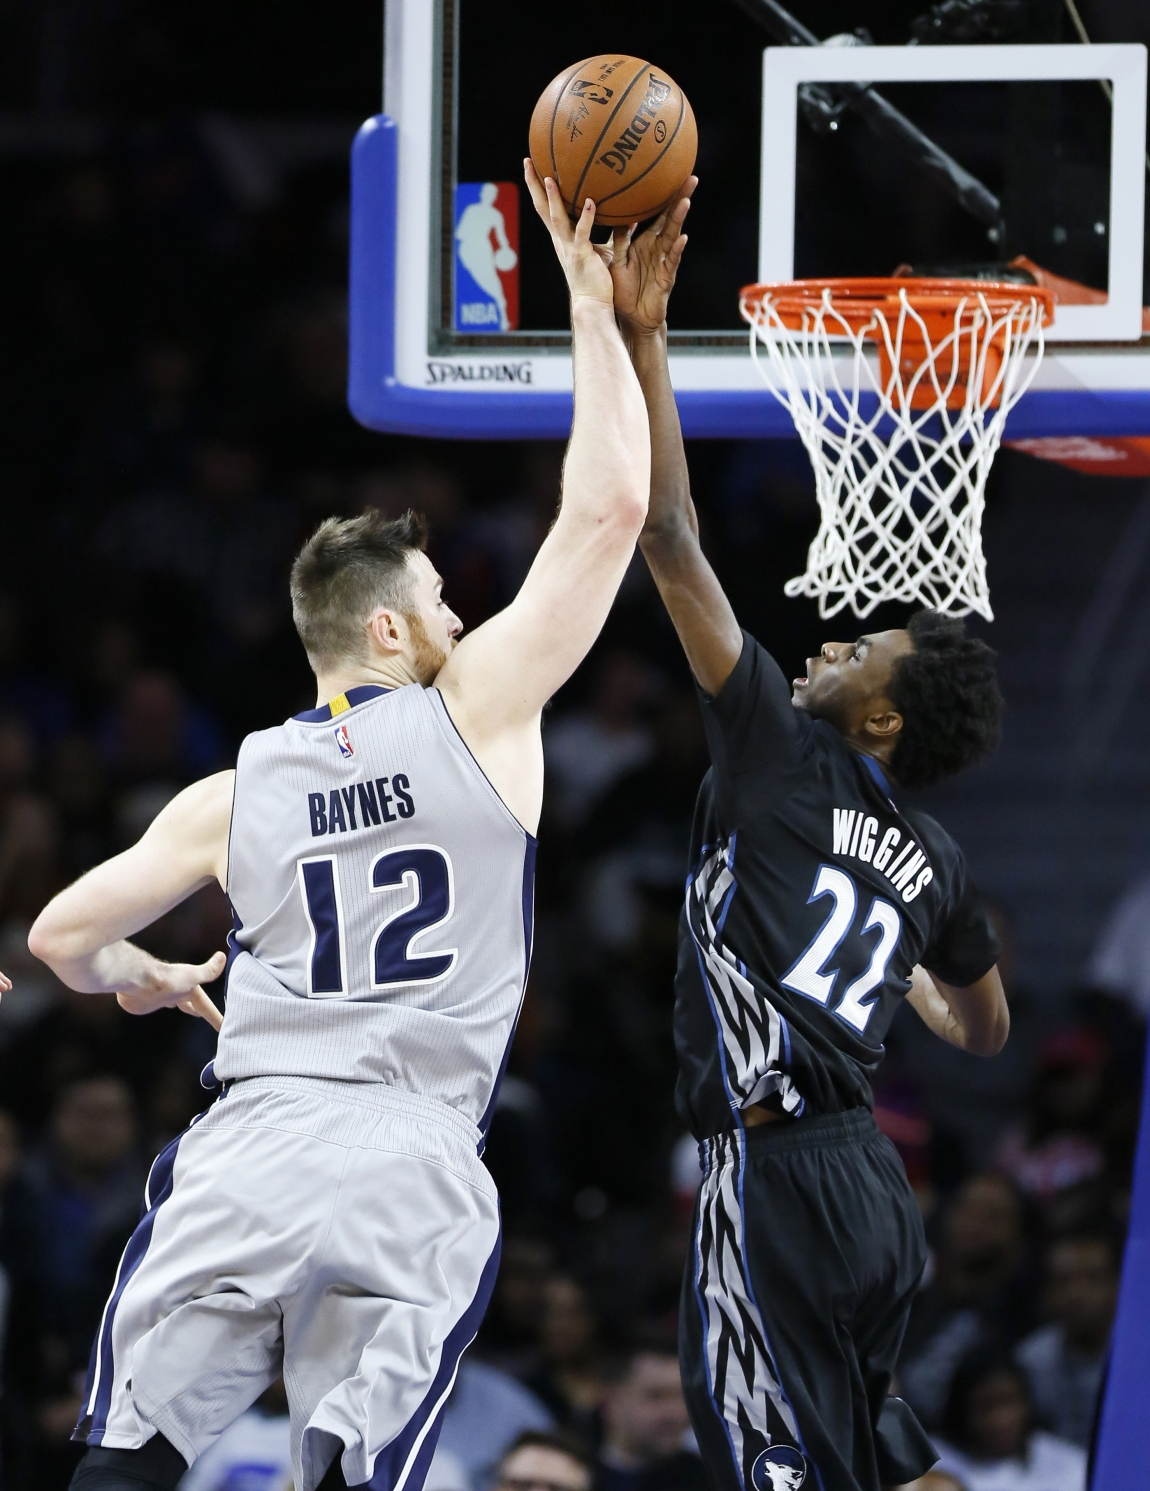 Game Preview: Timberwolves vs. Pistons